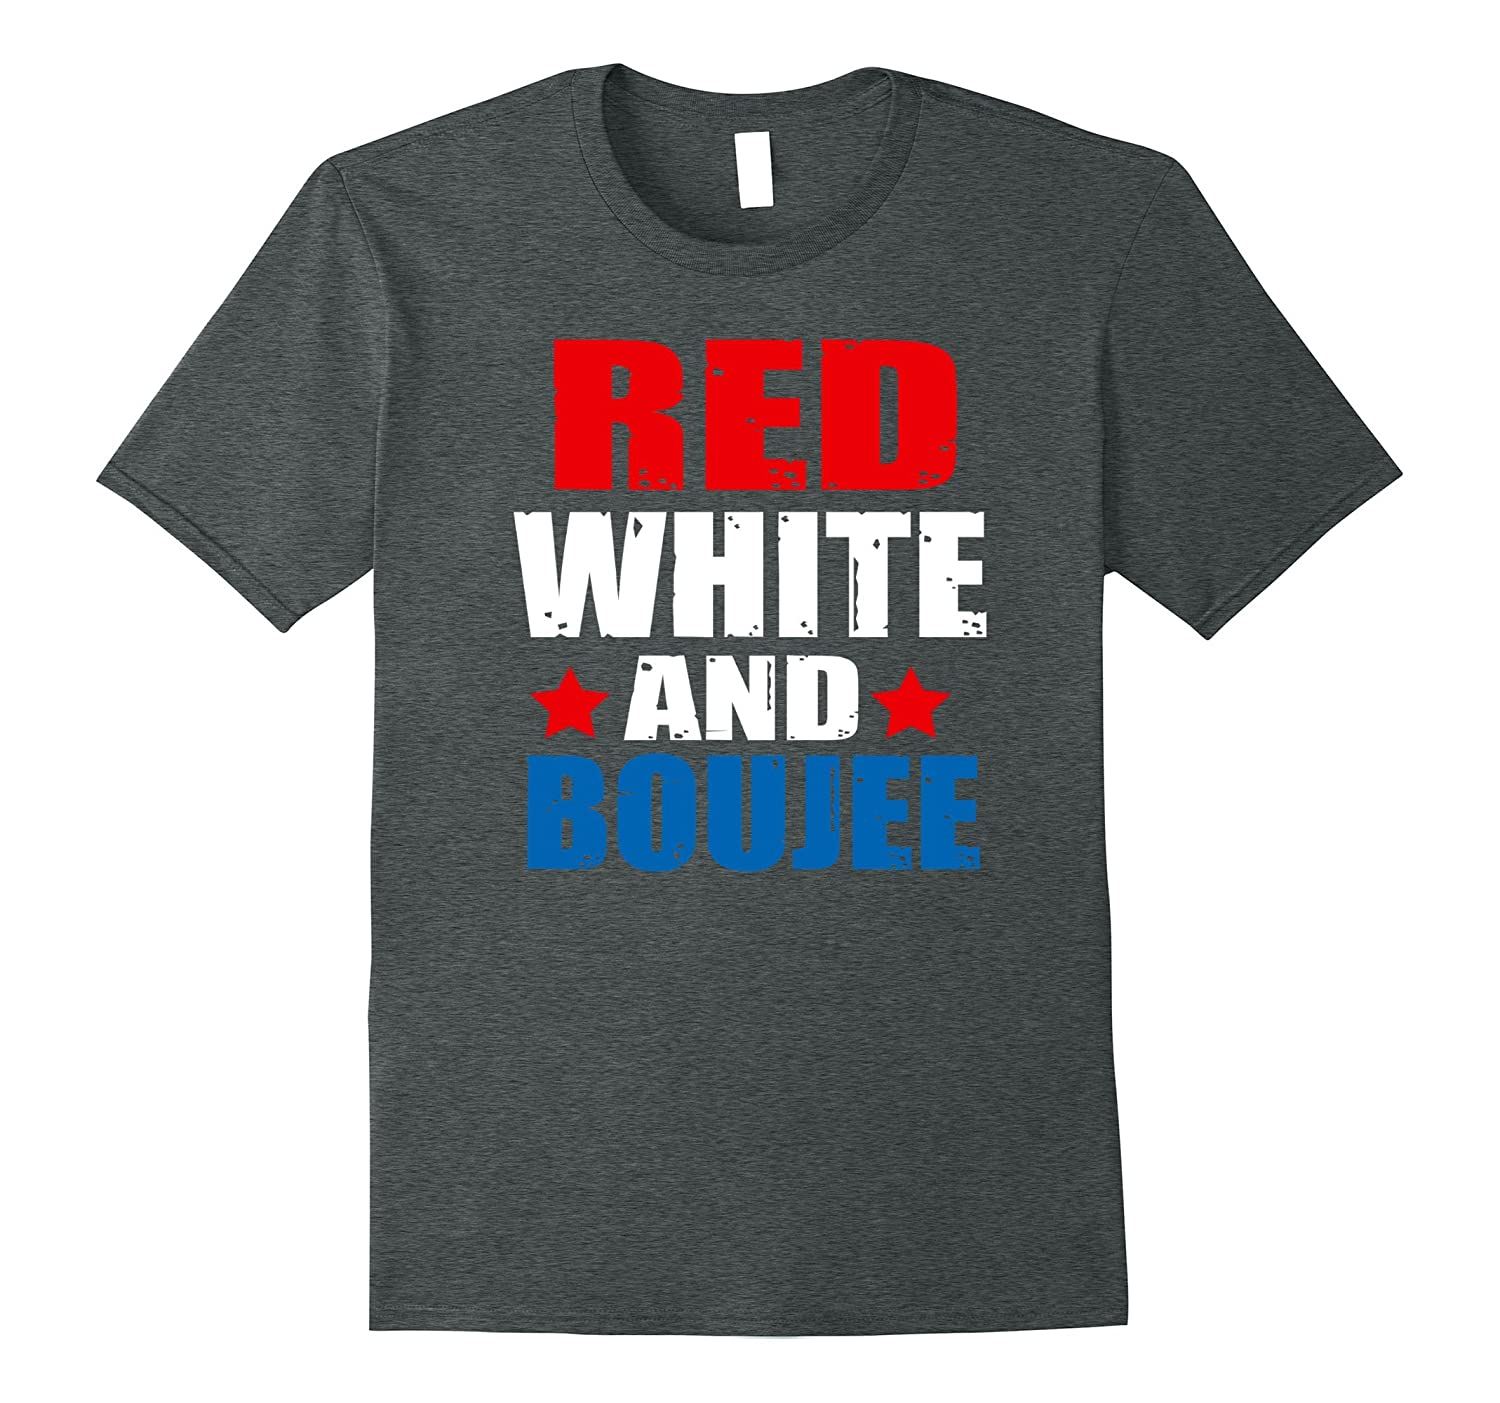 cc78927da Red White and Boujee Funny 4th of July Tshirt-PL – Polozatee